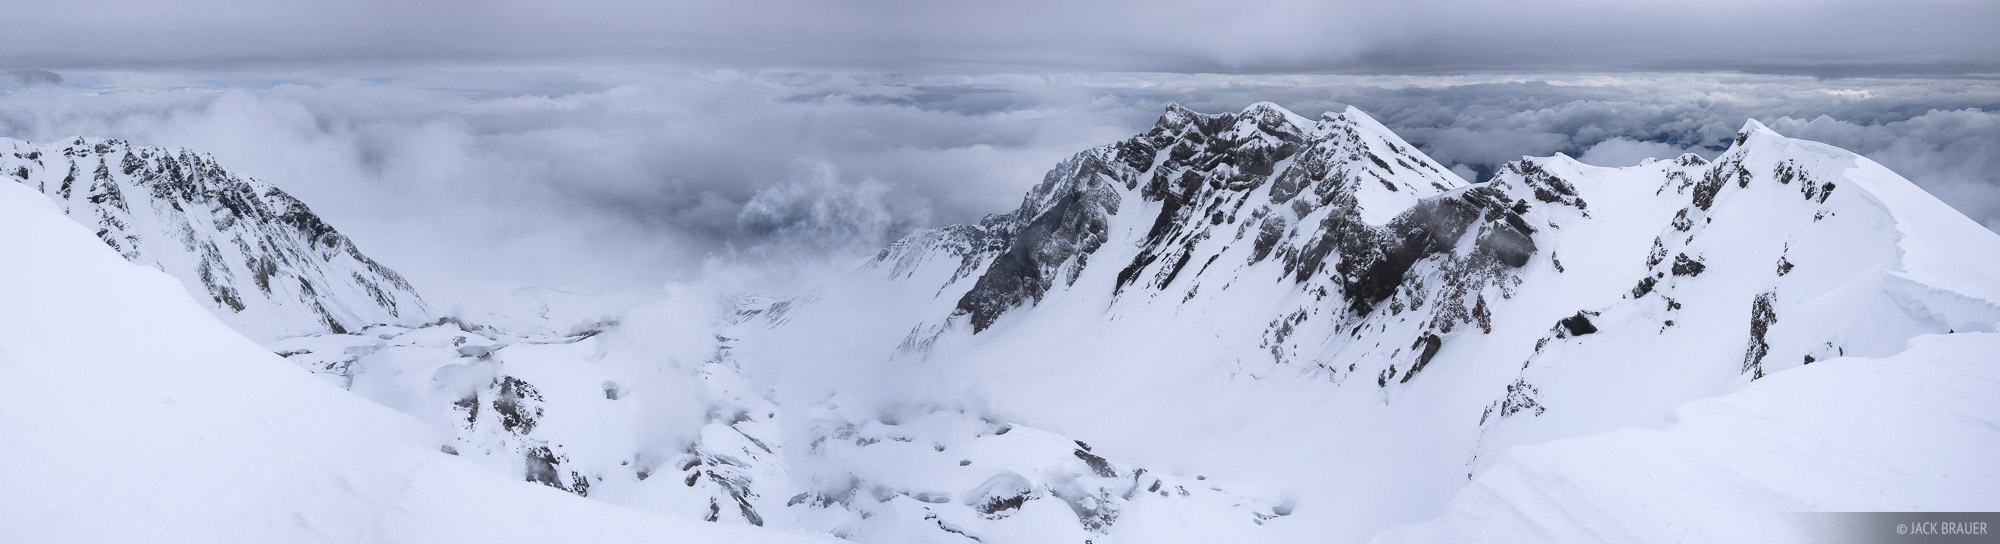 Panorama from the summit ridge, looking into the steaming crater of Mount Saint Helens which blew its top almost exactly 30 years...